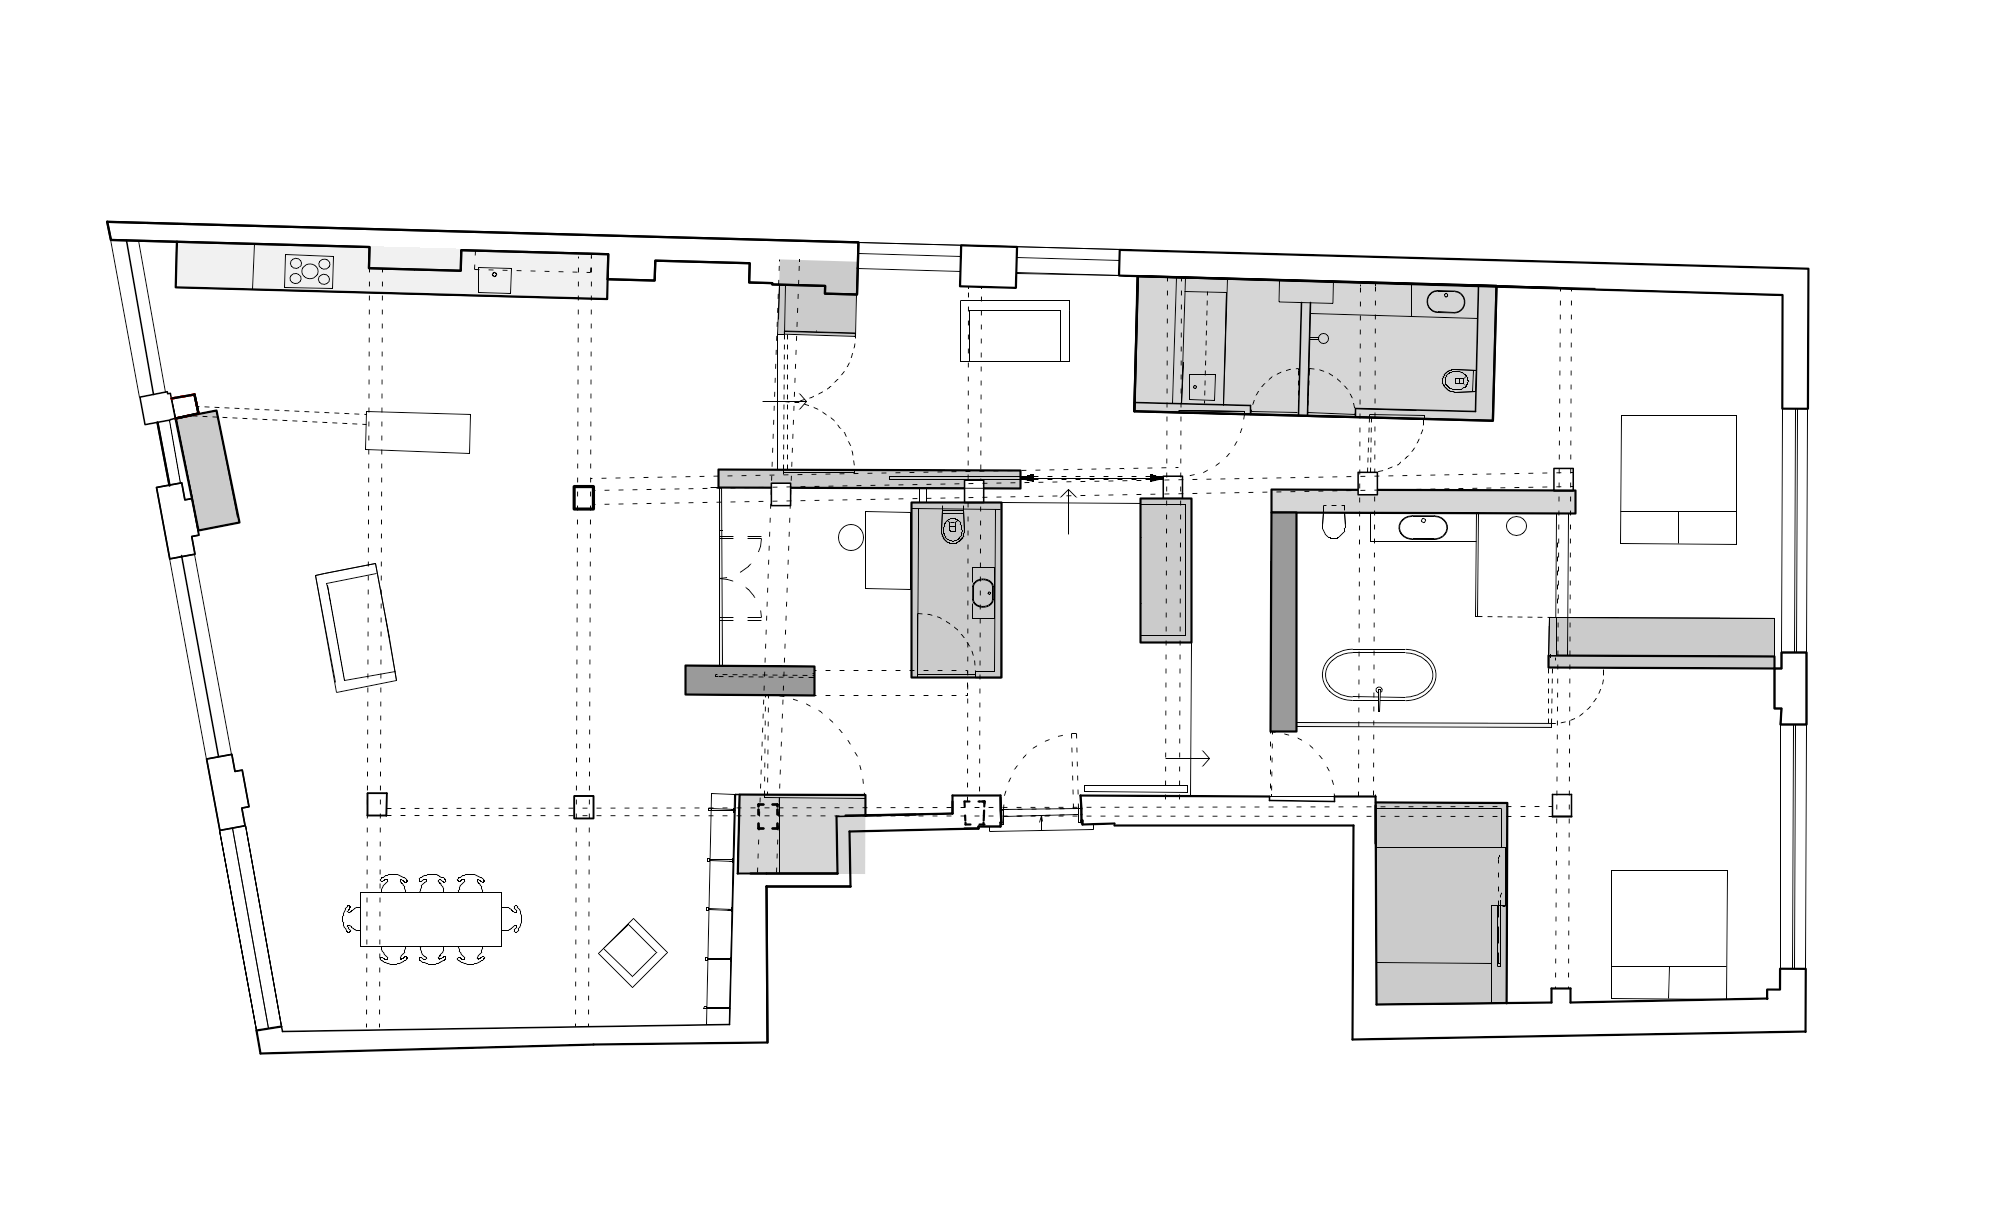 Architectural rawing for a converted warehouse home in Clerkenwell by William Tozer Associates